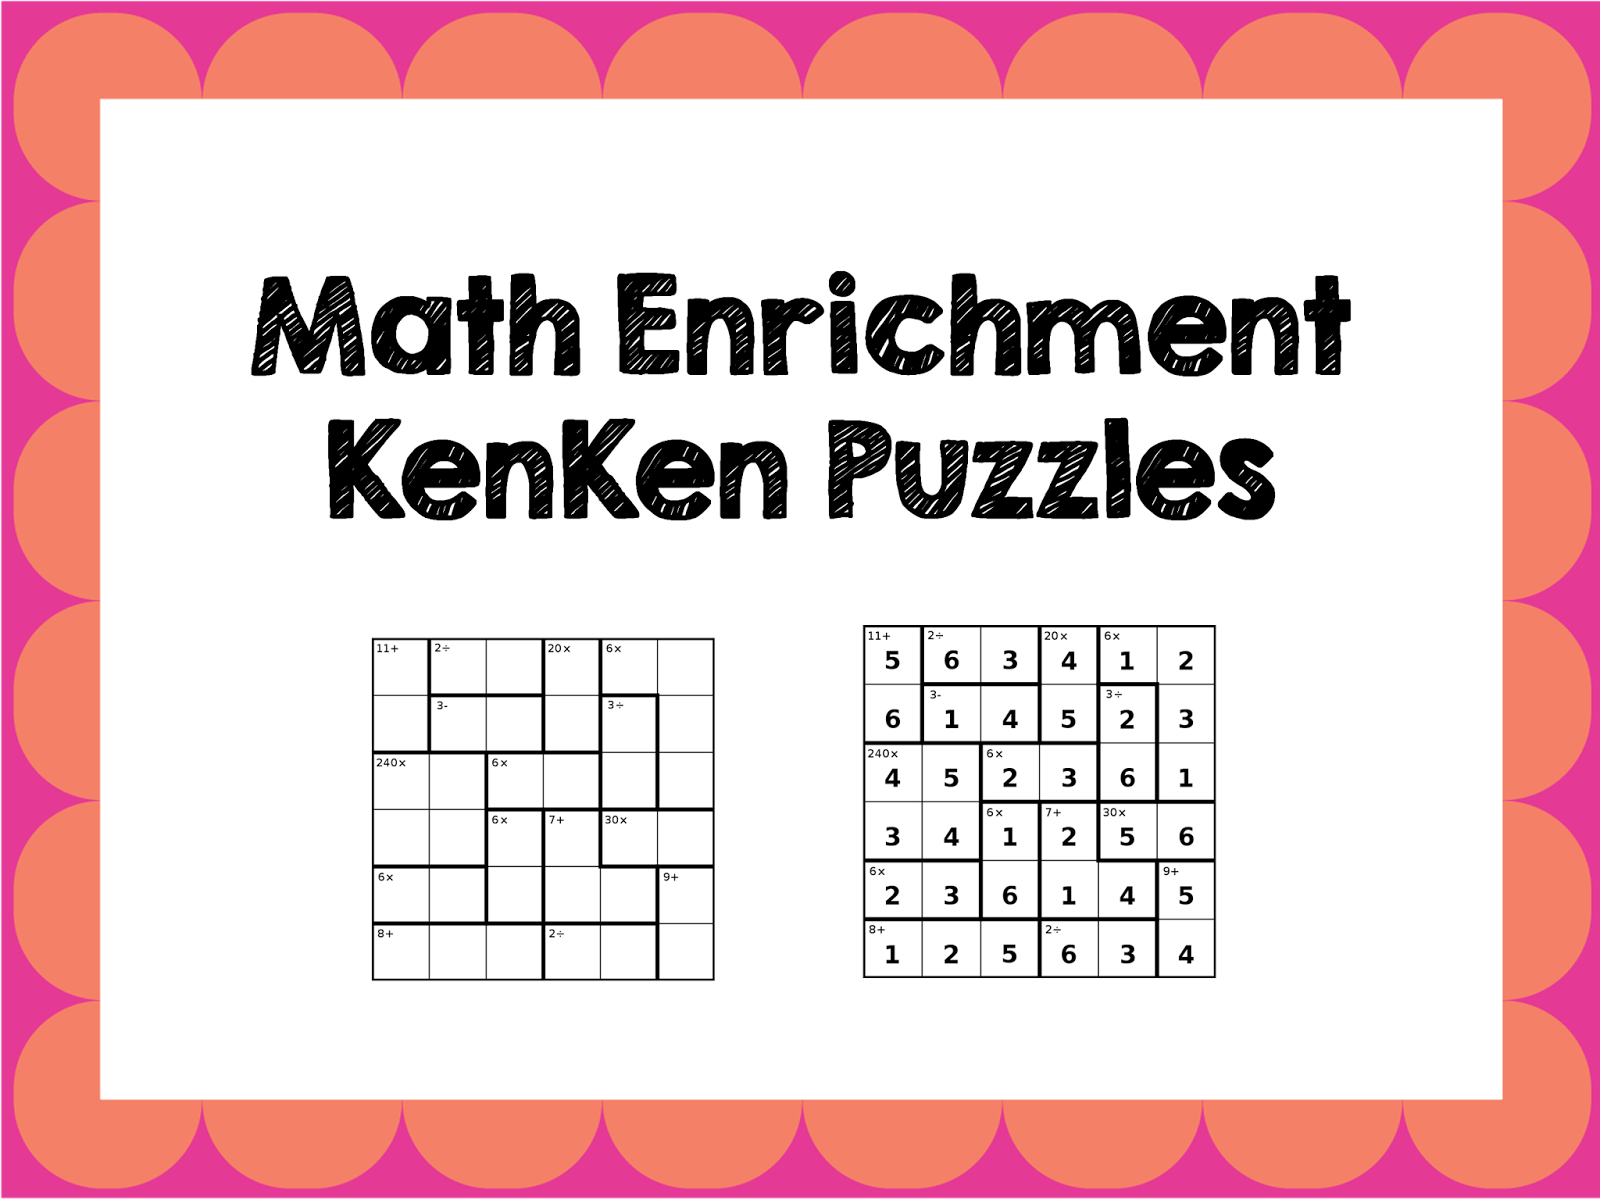 Worksheet Kindergarten Enrichment Ideas 1000 ideas about enrichment activities on pinterest teacher math freebies using kenken puzzles in the classroom harder than sudoku video of how to organize these as extension act